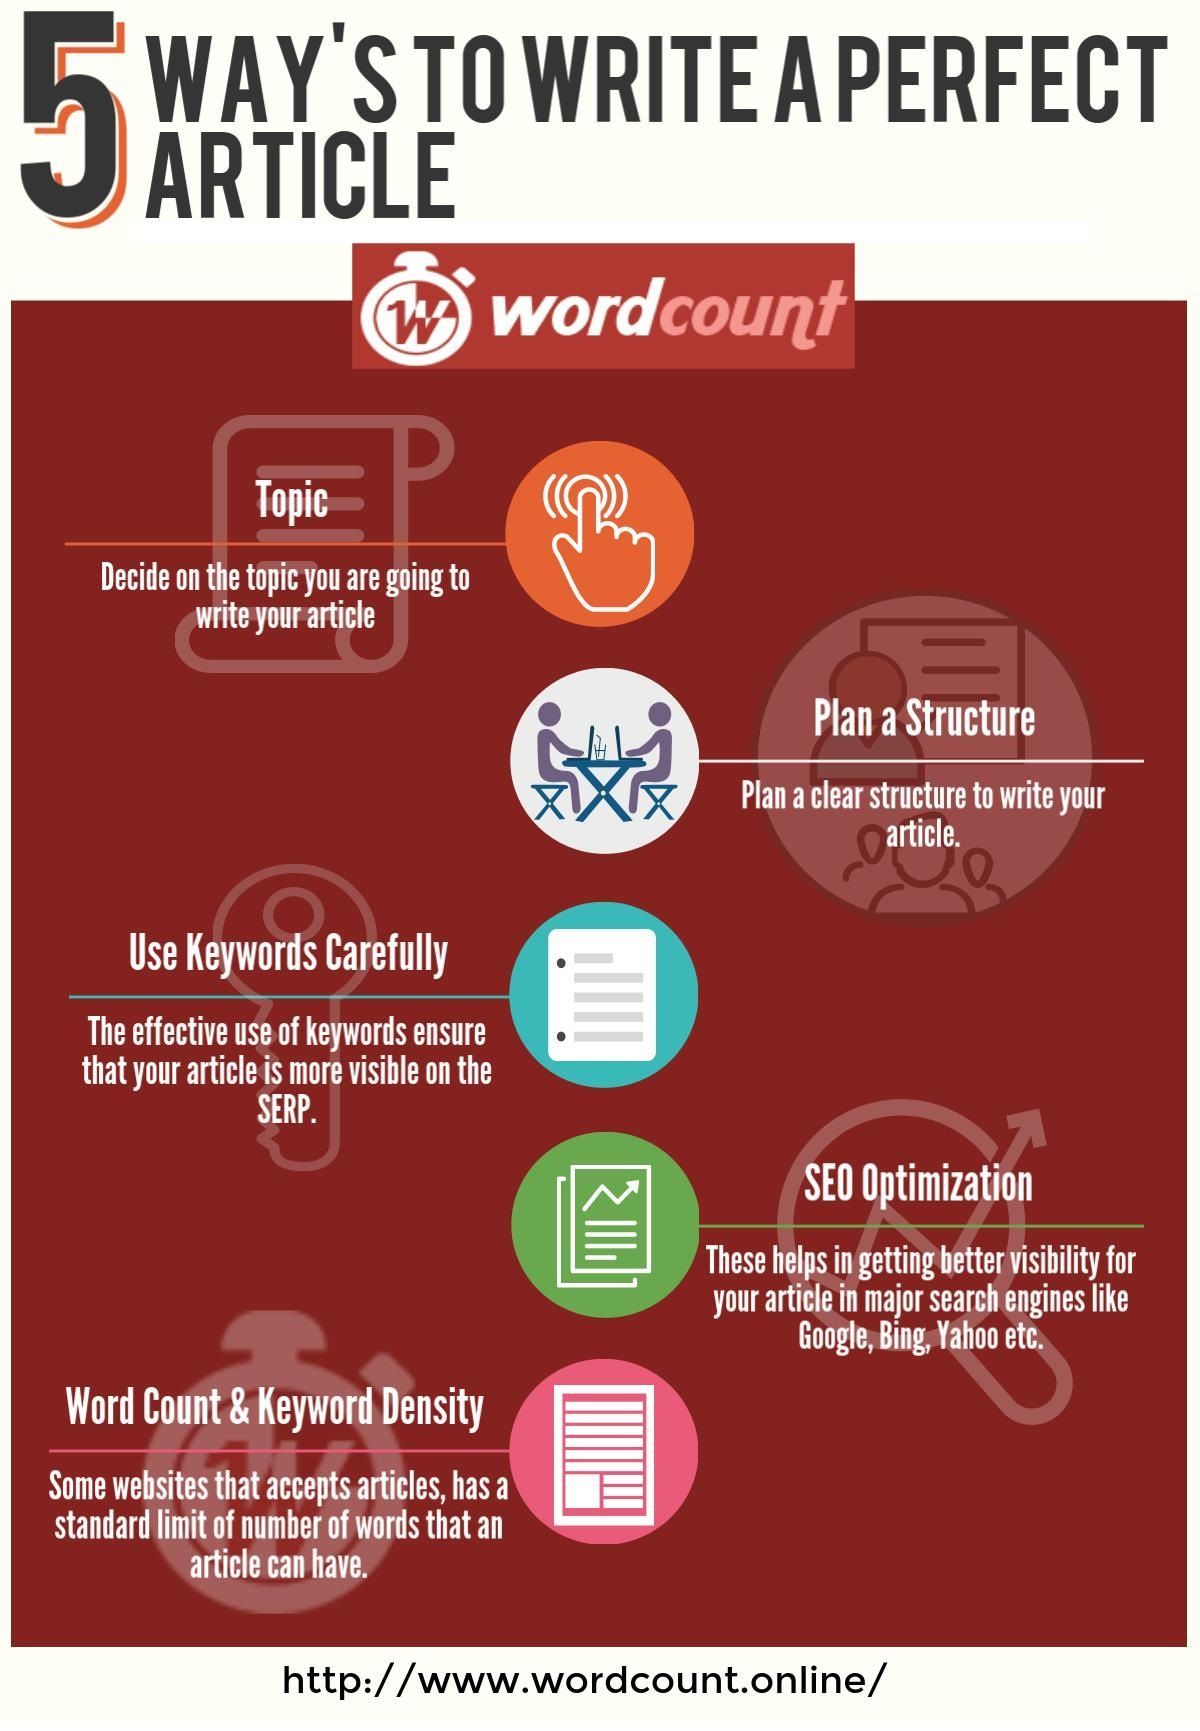 12 Tips to Write a Perfect Article - Word Count Tool ideas